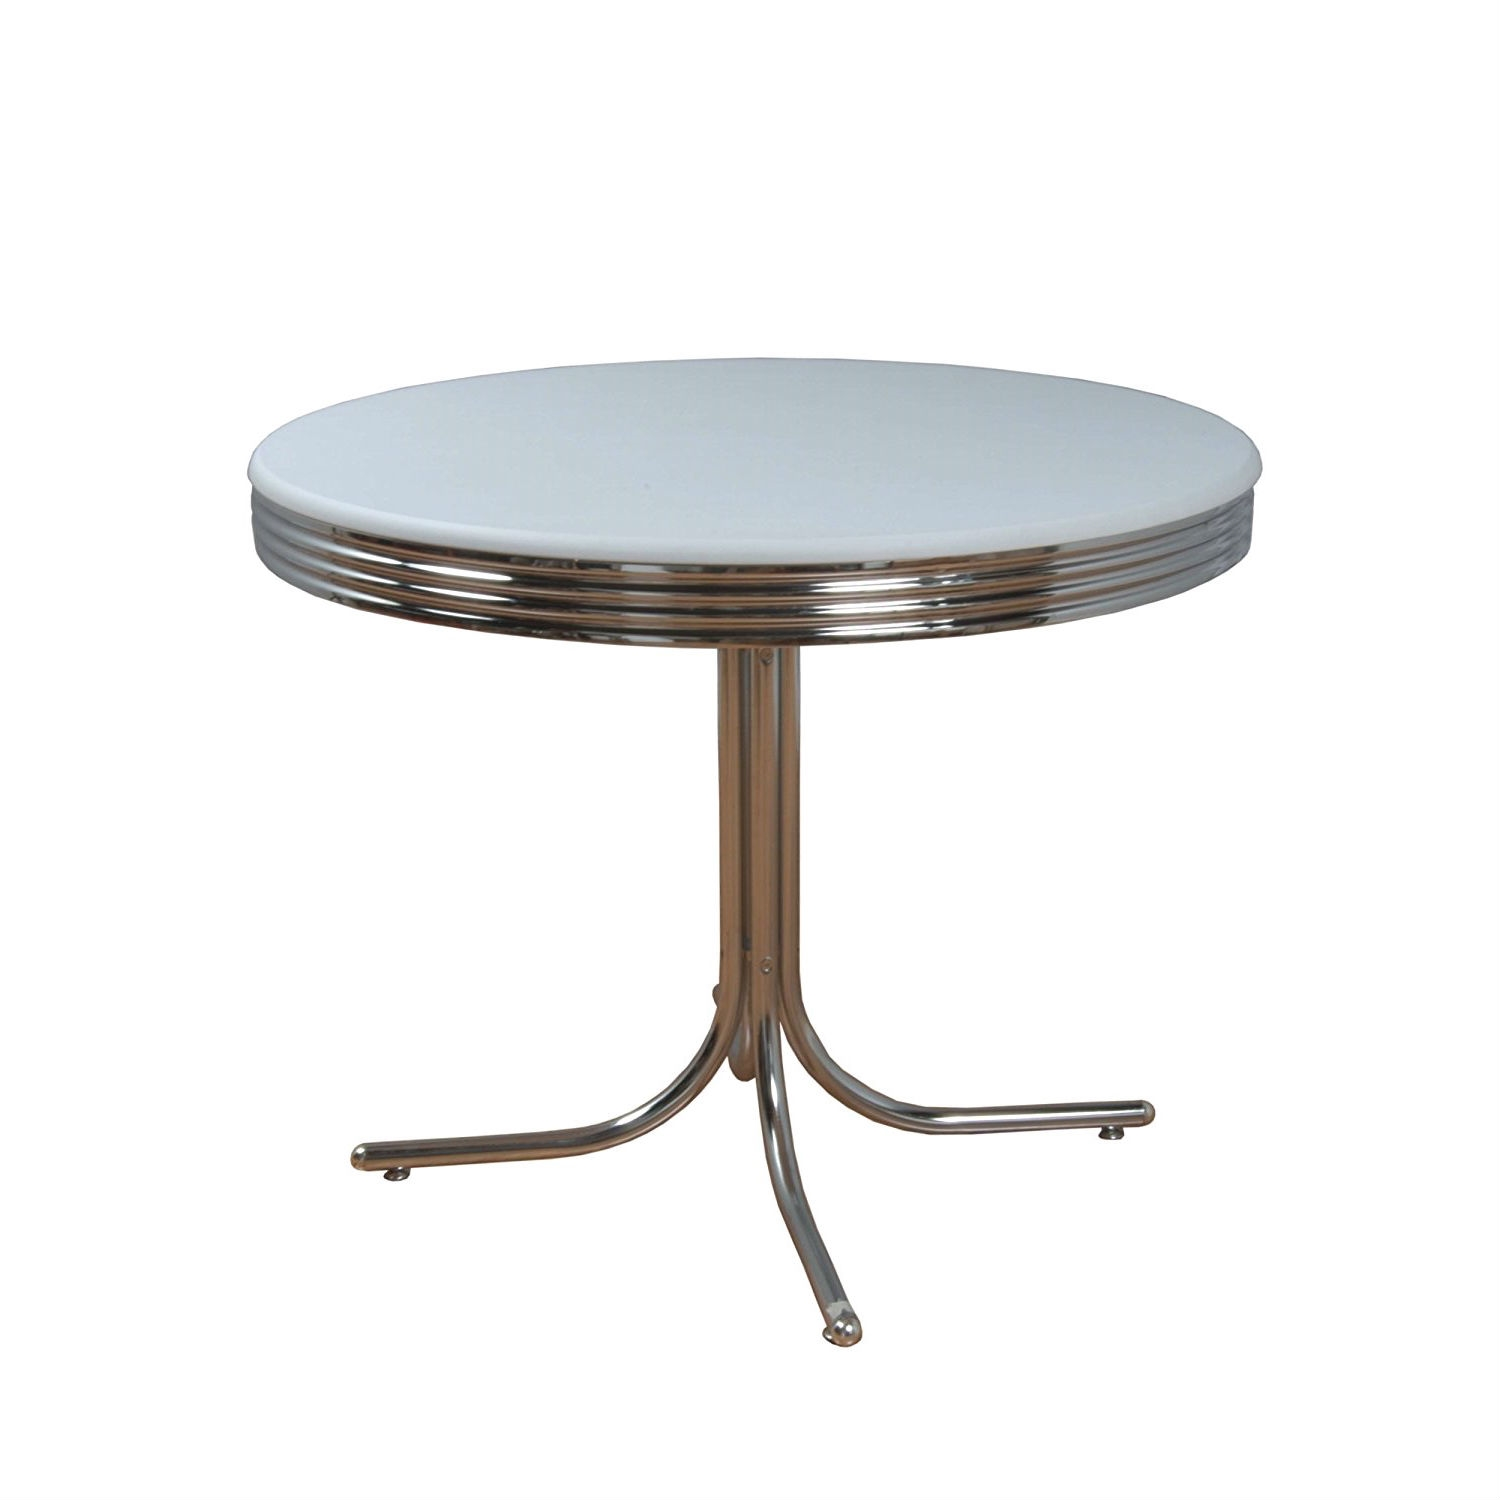 38 Inch Round Table.Round 38 Inch Retro Dining Table In White And Chrome